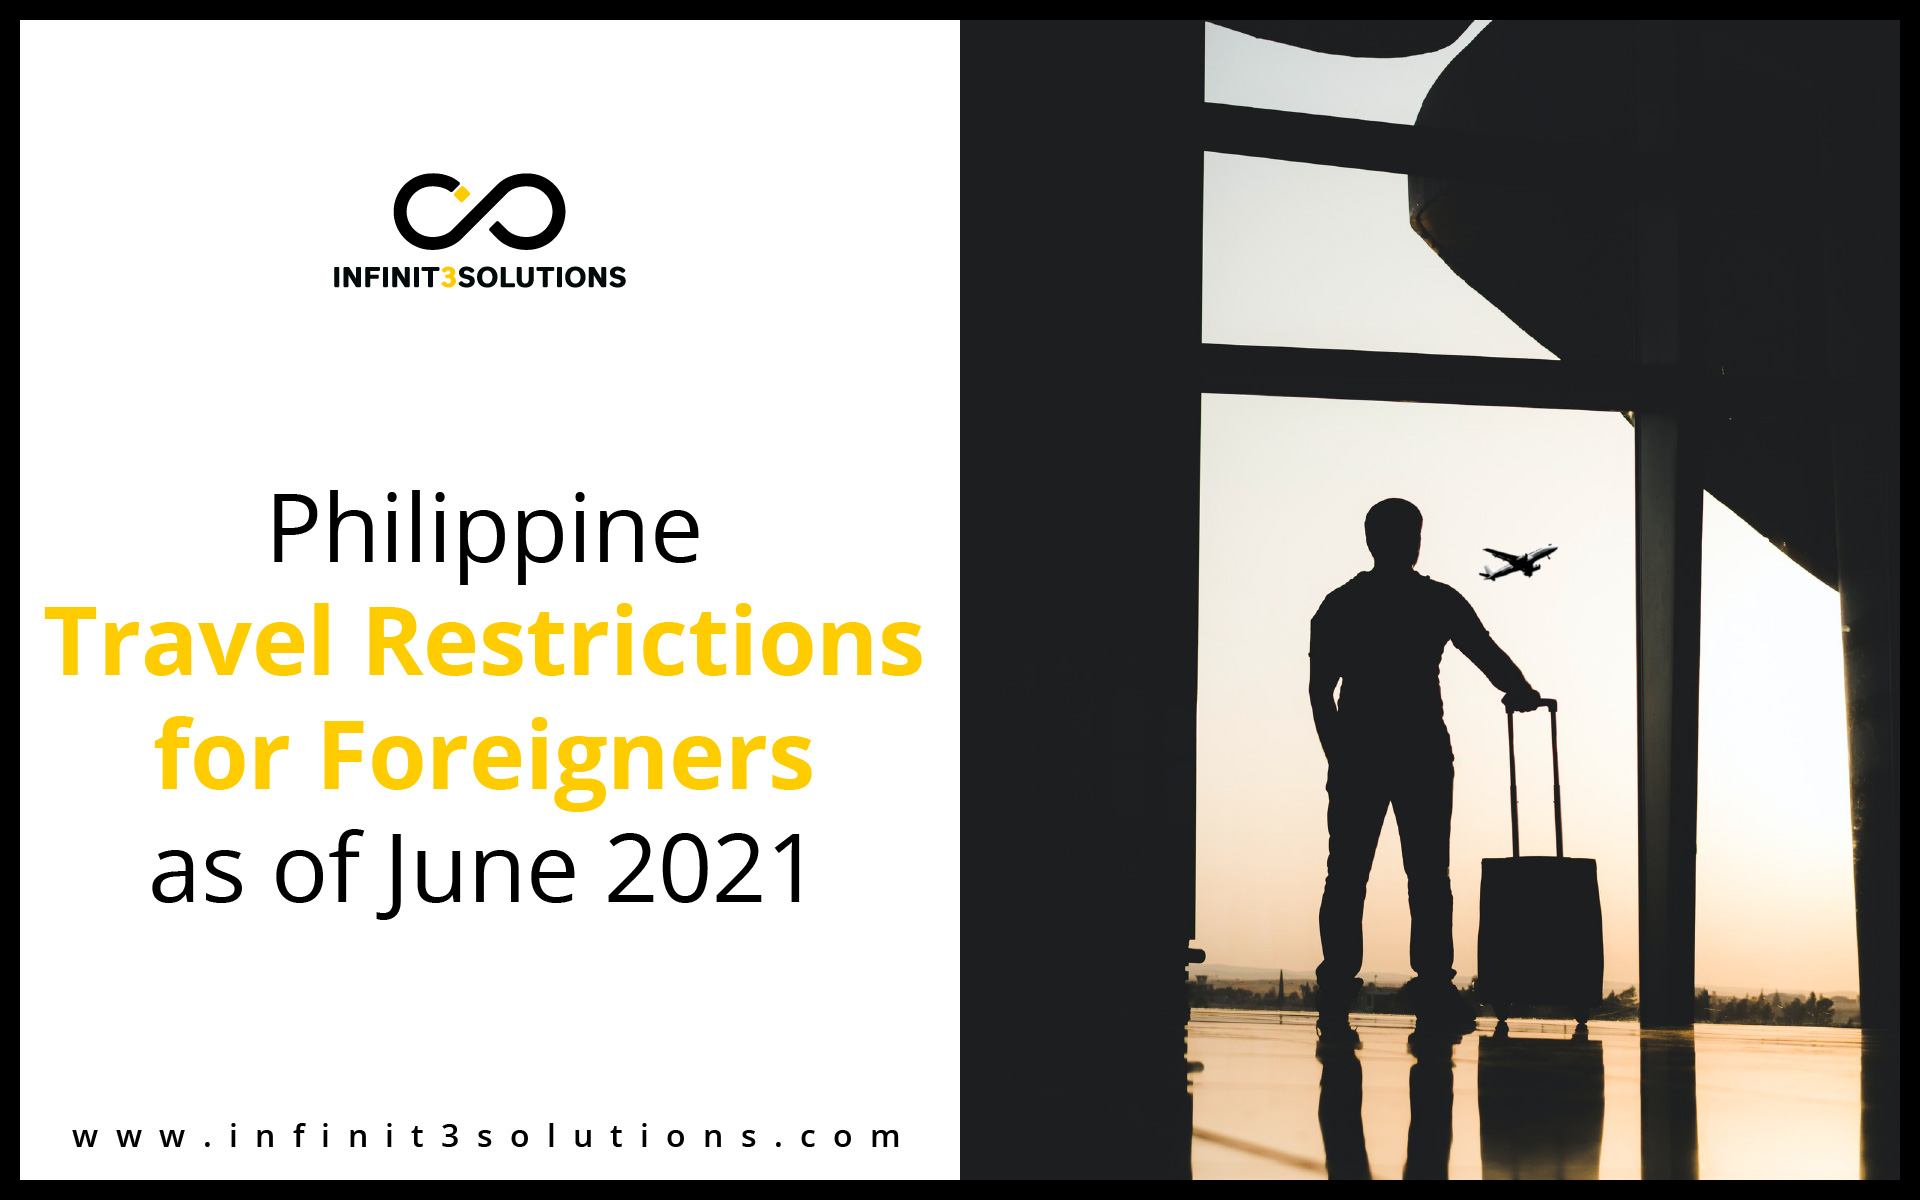 Foreigner Travel Restrictions in the Philippines